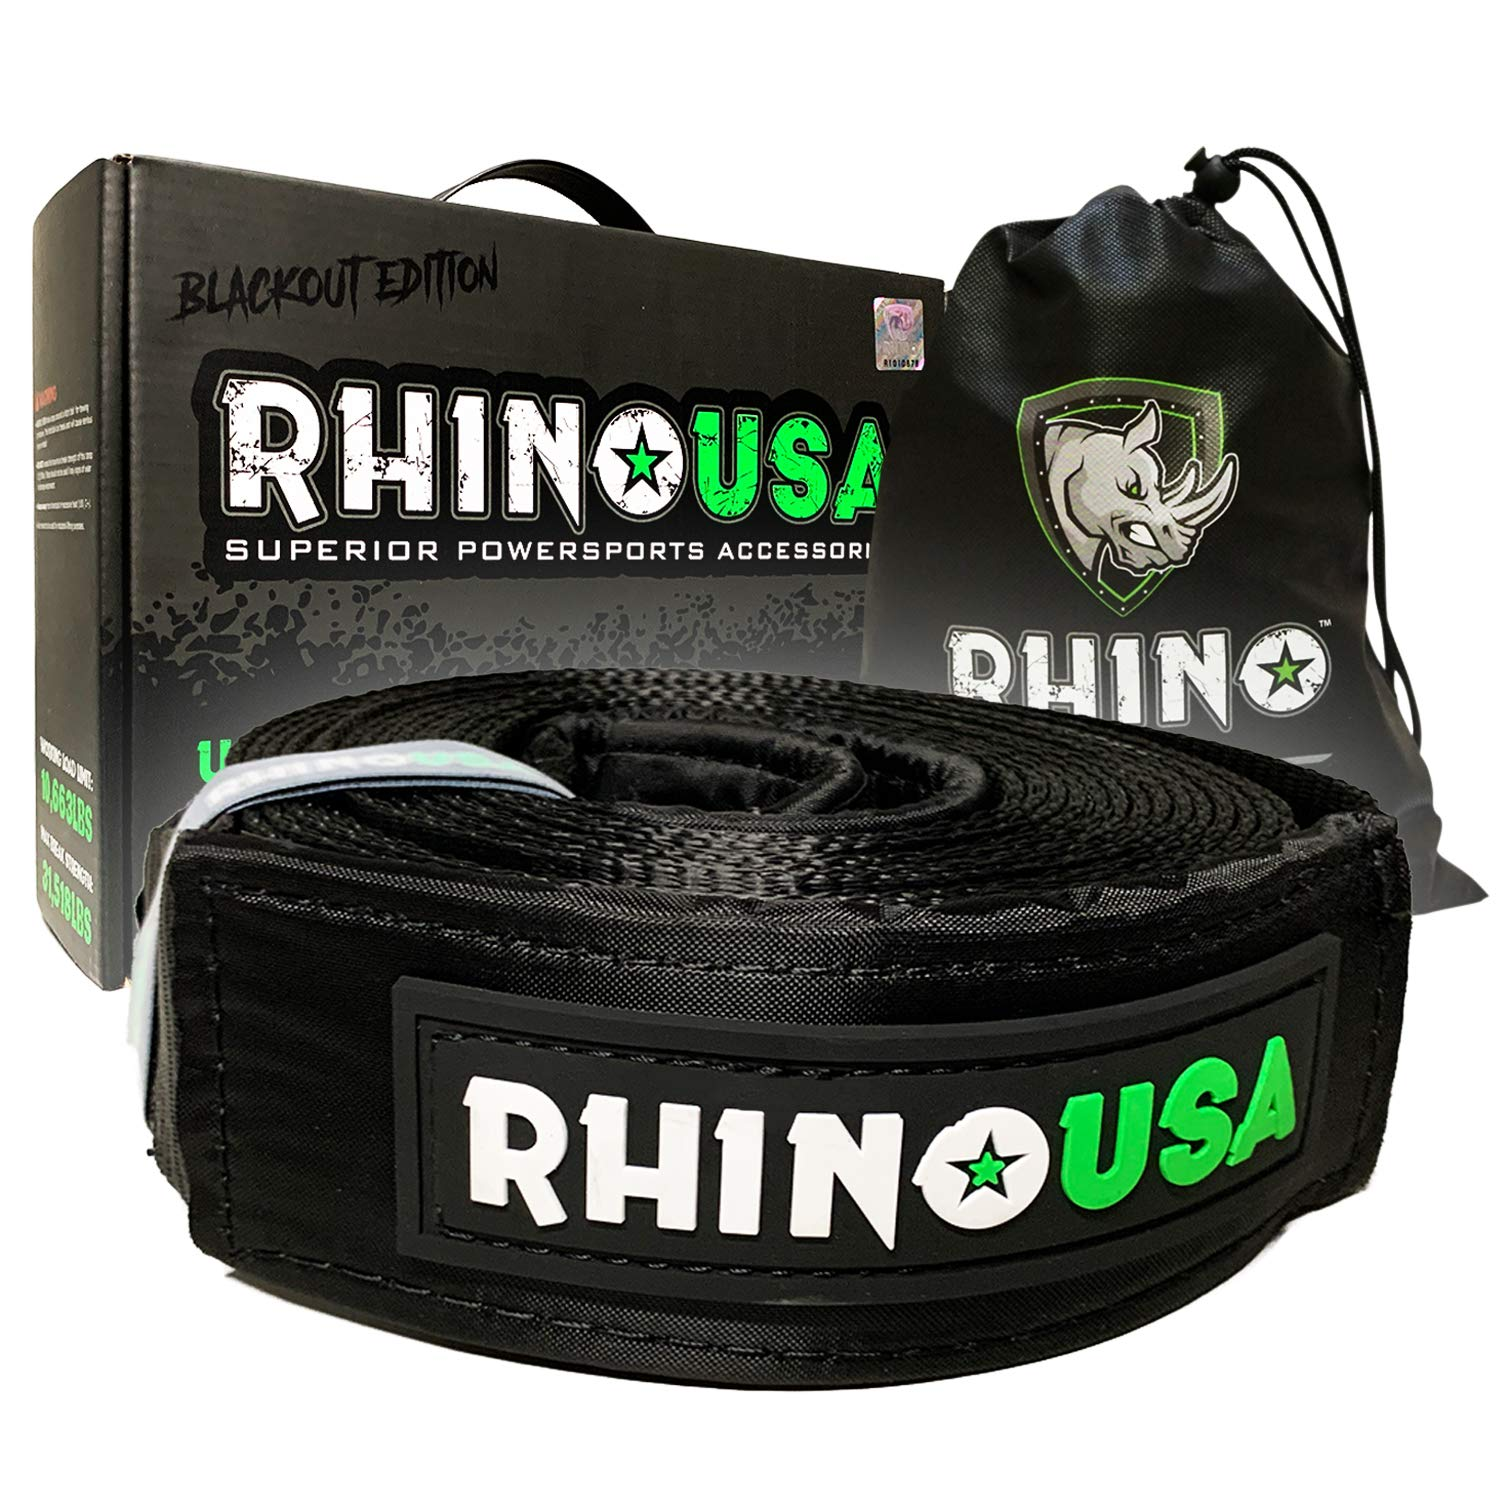 Triple Reinforced Loop End to Ensure Peace of Mind Rhino USA Blackout Edition Tree Saver Winch Strap 3 inch x 8 Foot Emergency Off Road Recovery Tow Rope Lab Tested 31,518lb Break Strength